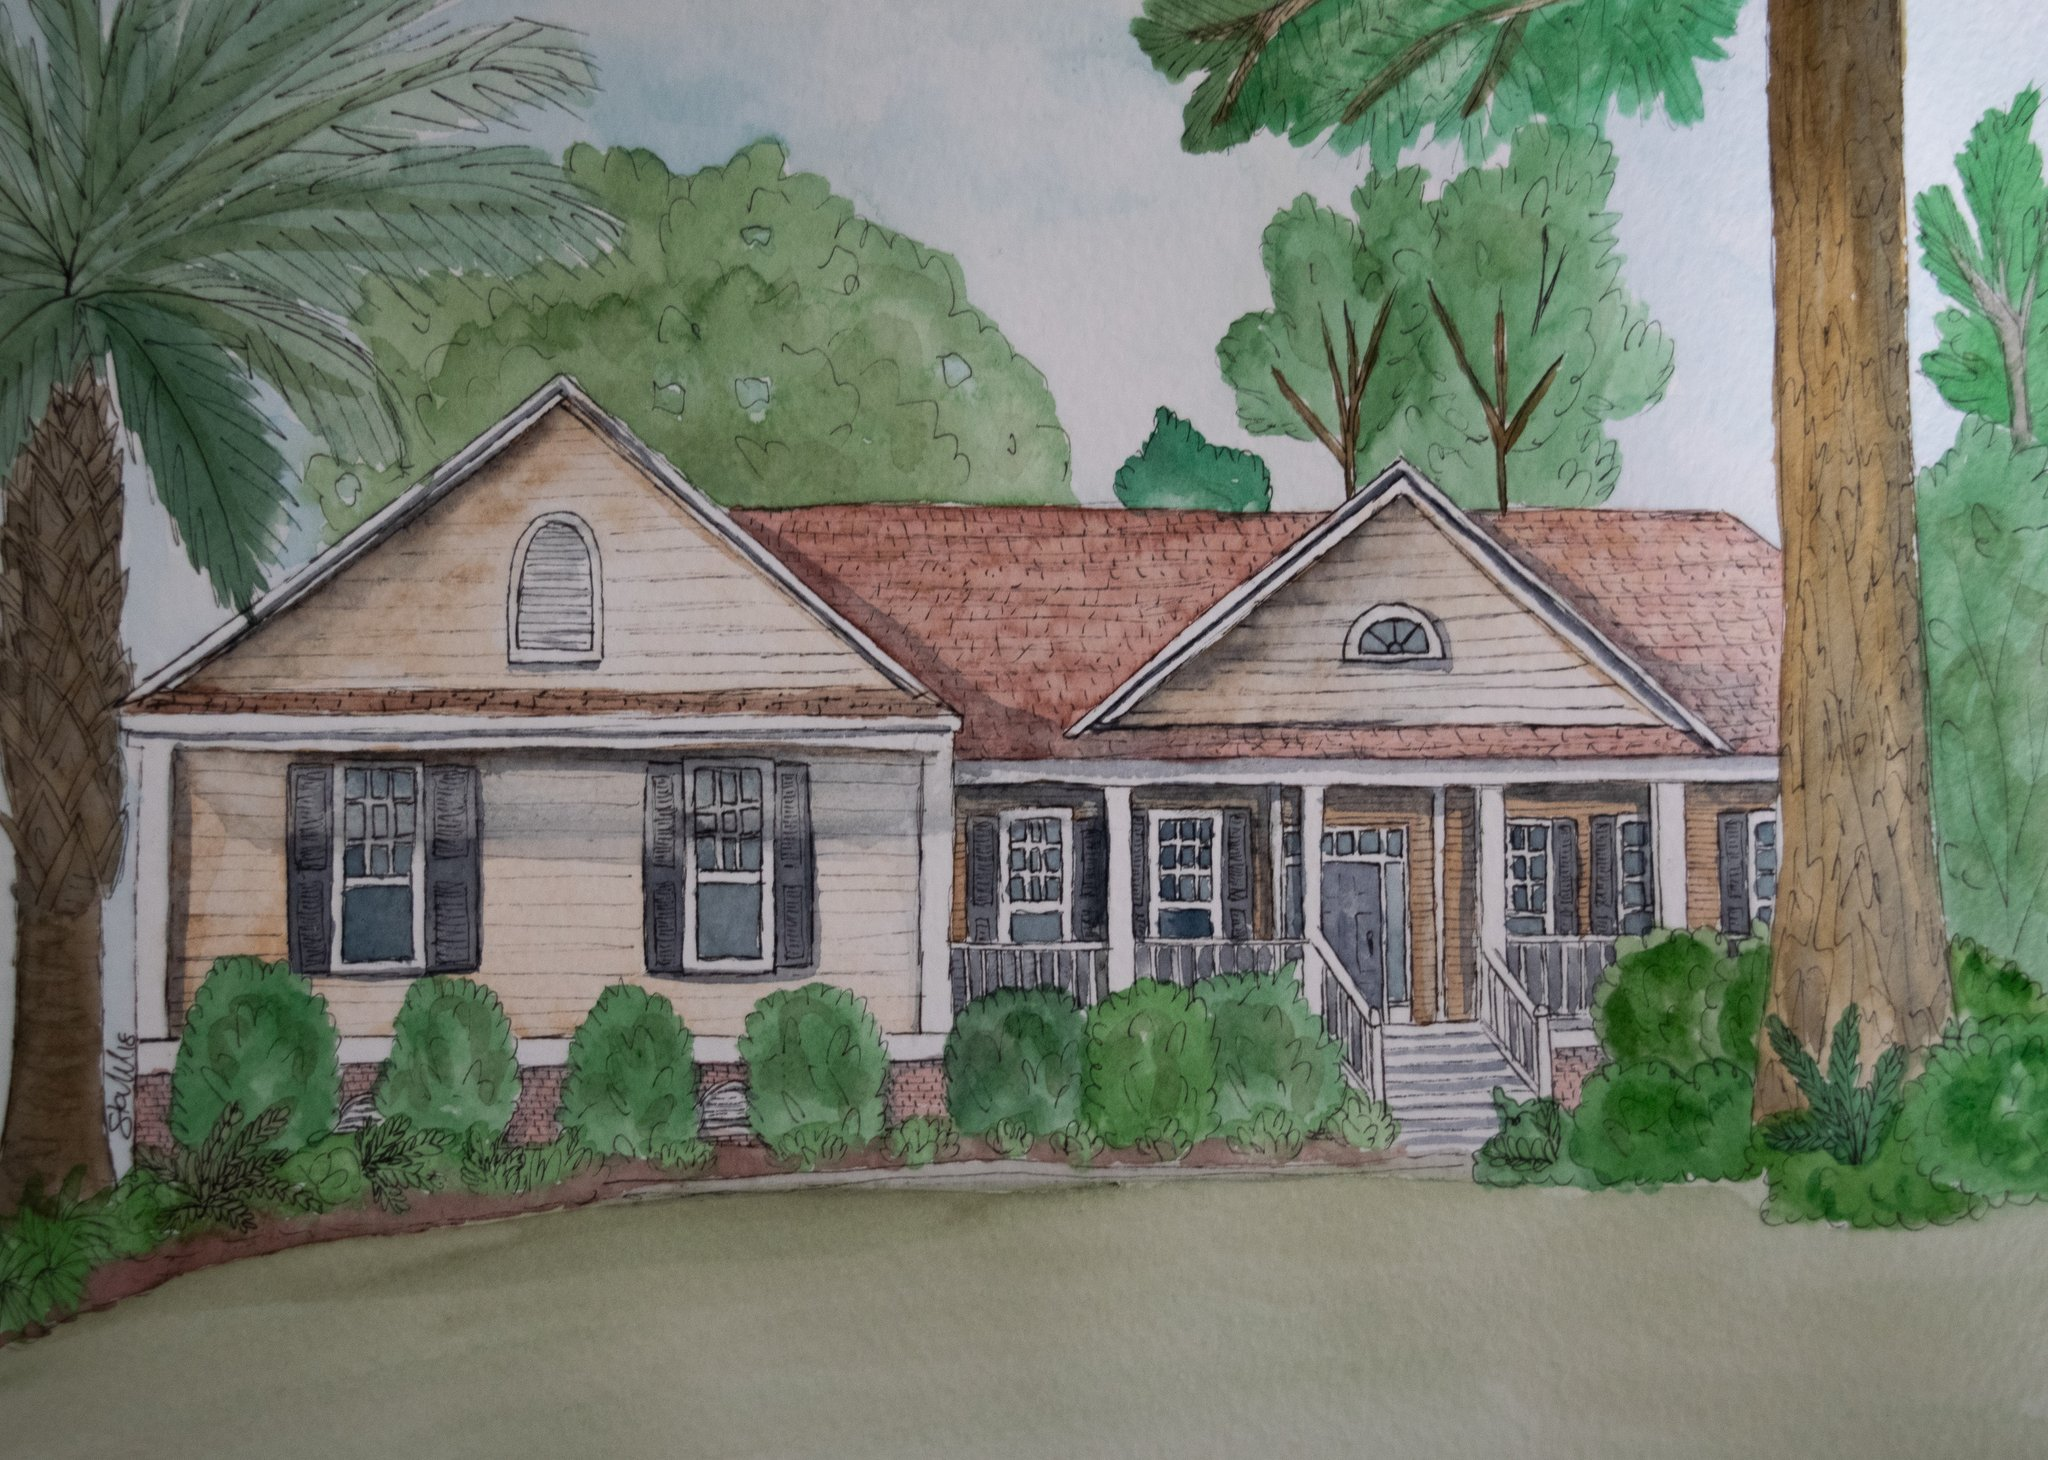 A watercolor drawing of a ranch-style home